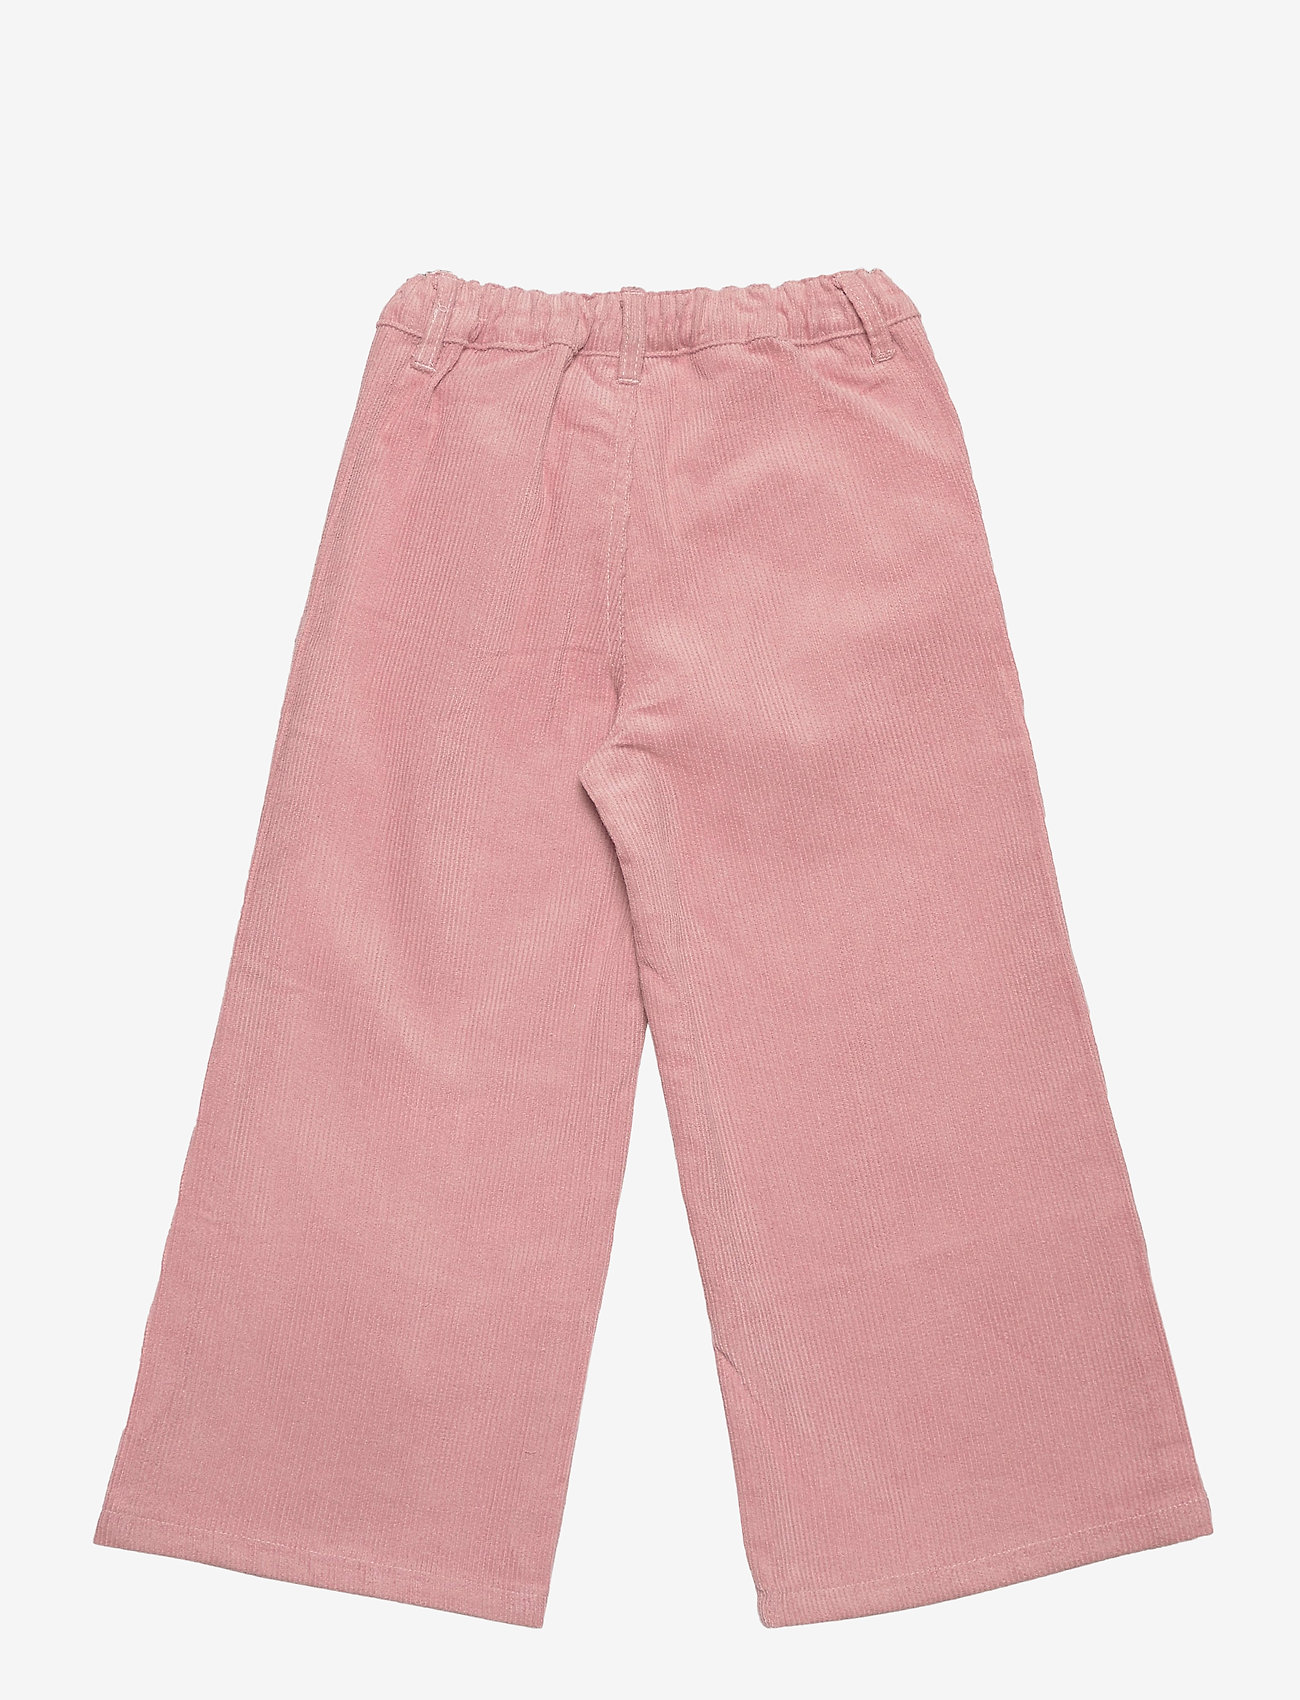 Omila Wide Cord Pants (Peachskin) (19.98 €) - The New Z3YWu